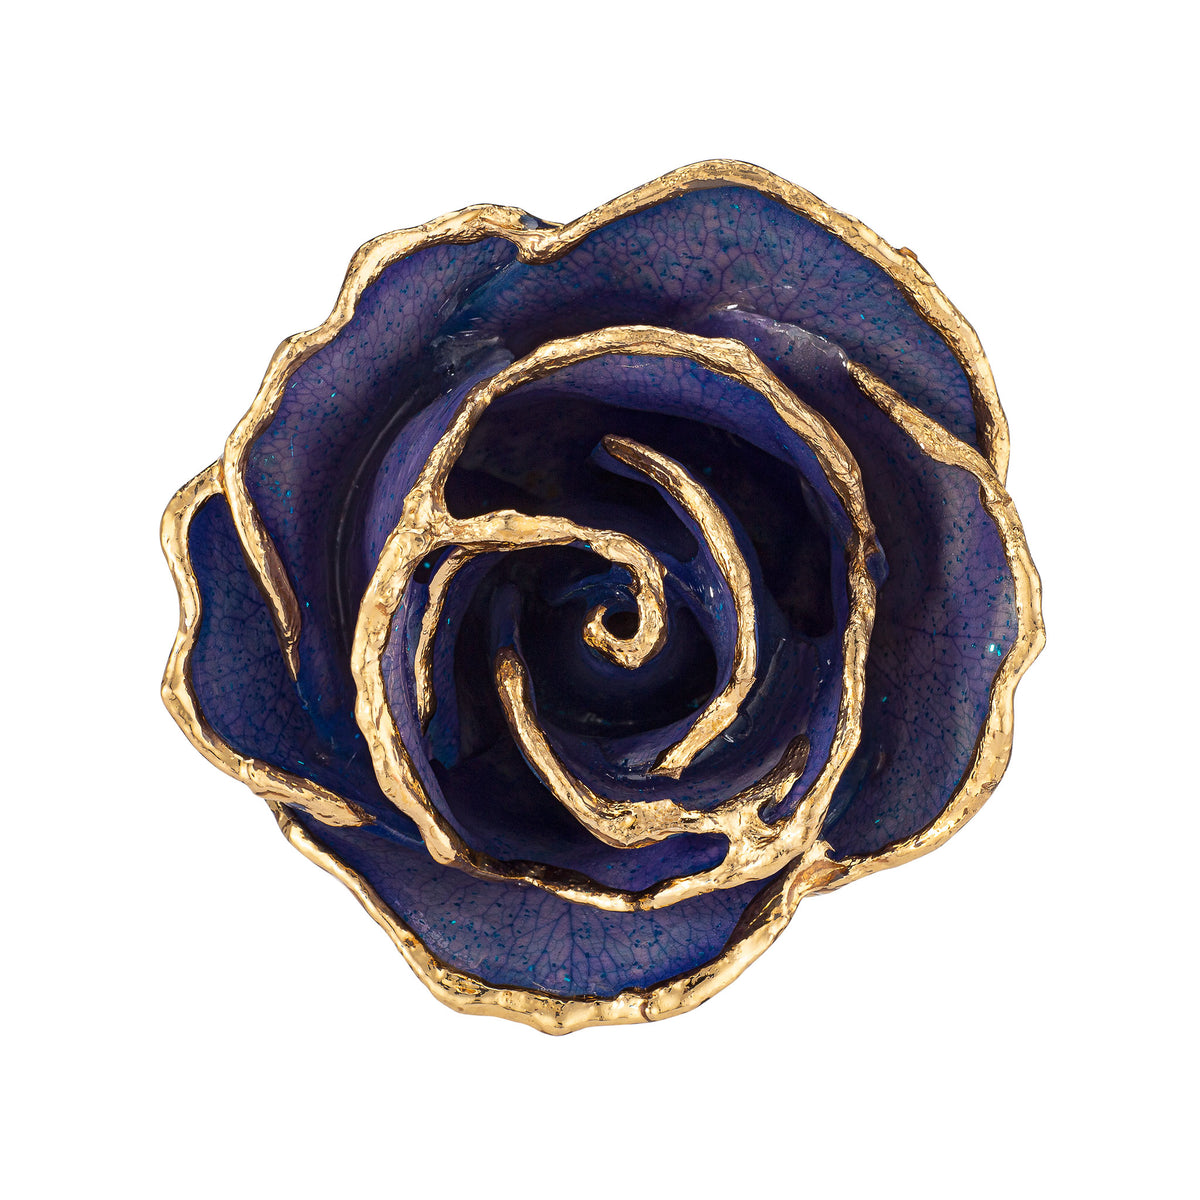 24K Gold Trimmed Forever Rose with Tanzanite (Purple, Lavender, and Blue color blend) Petals with Sapphire Blue Suspended Sparkles. View of Stem, Leaves, and Rose Petals and Showing Detail of Gold Trim view looking down into rose.